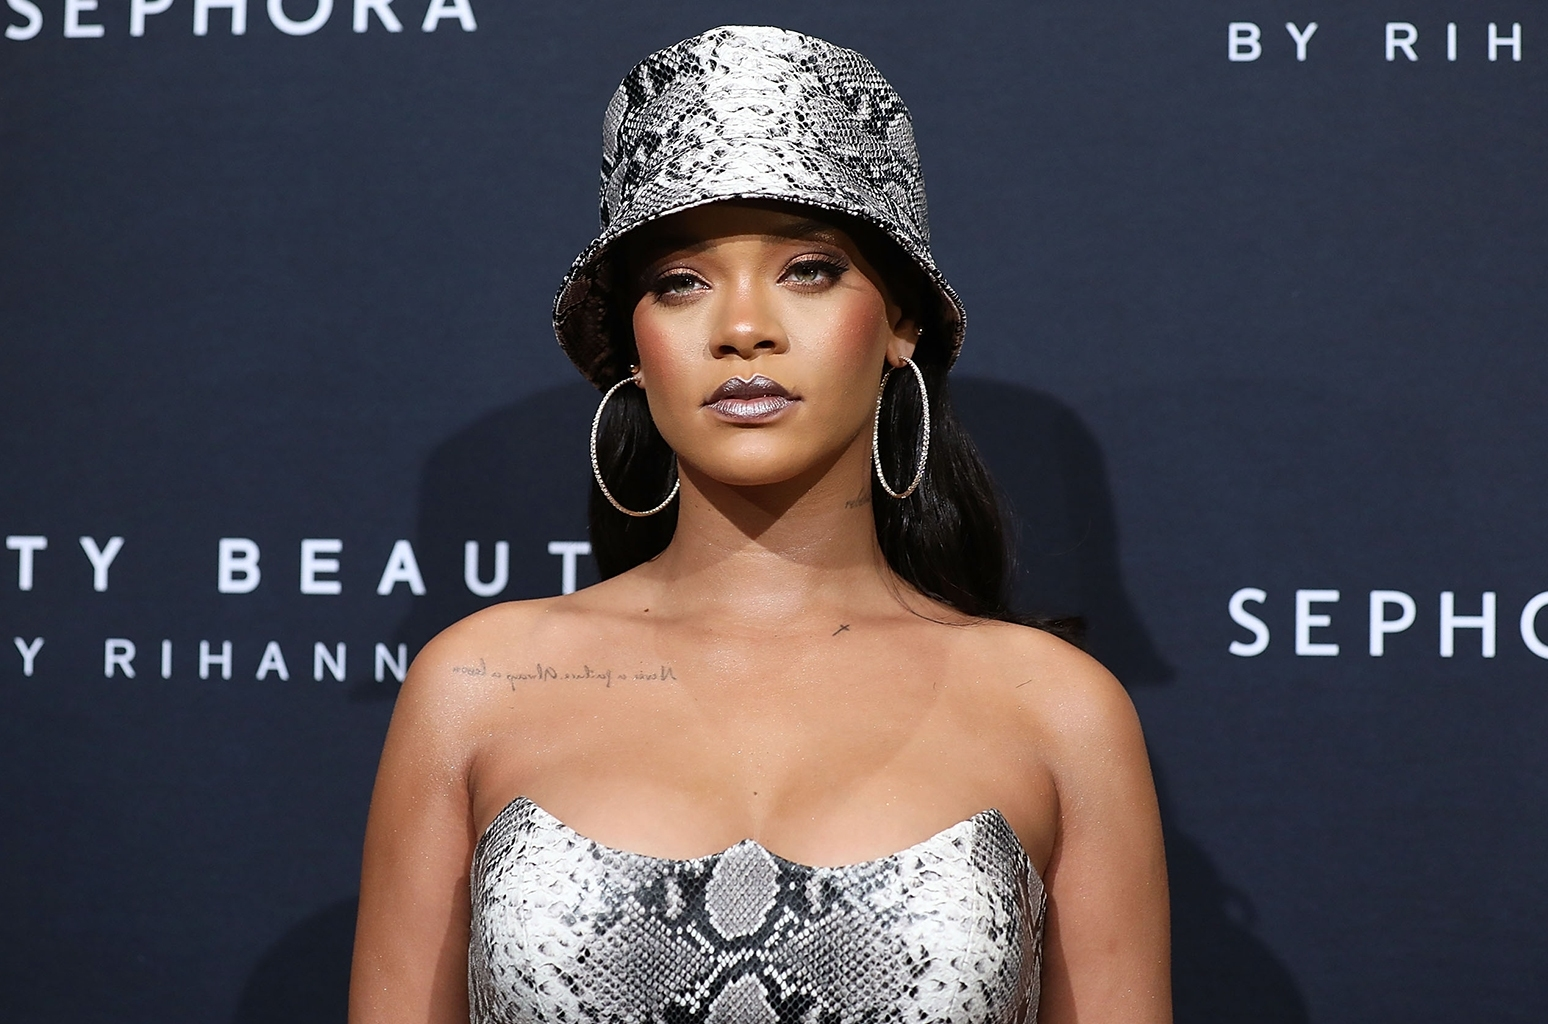 Rihanna Turned Down Super Bowl 2019 Gig In Solidarity With pertaining to Rihanna Super Bowl 2019